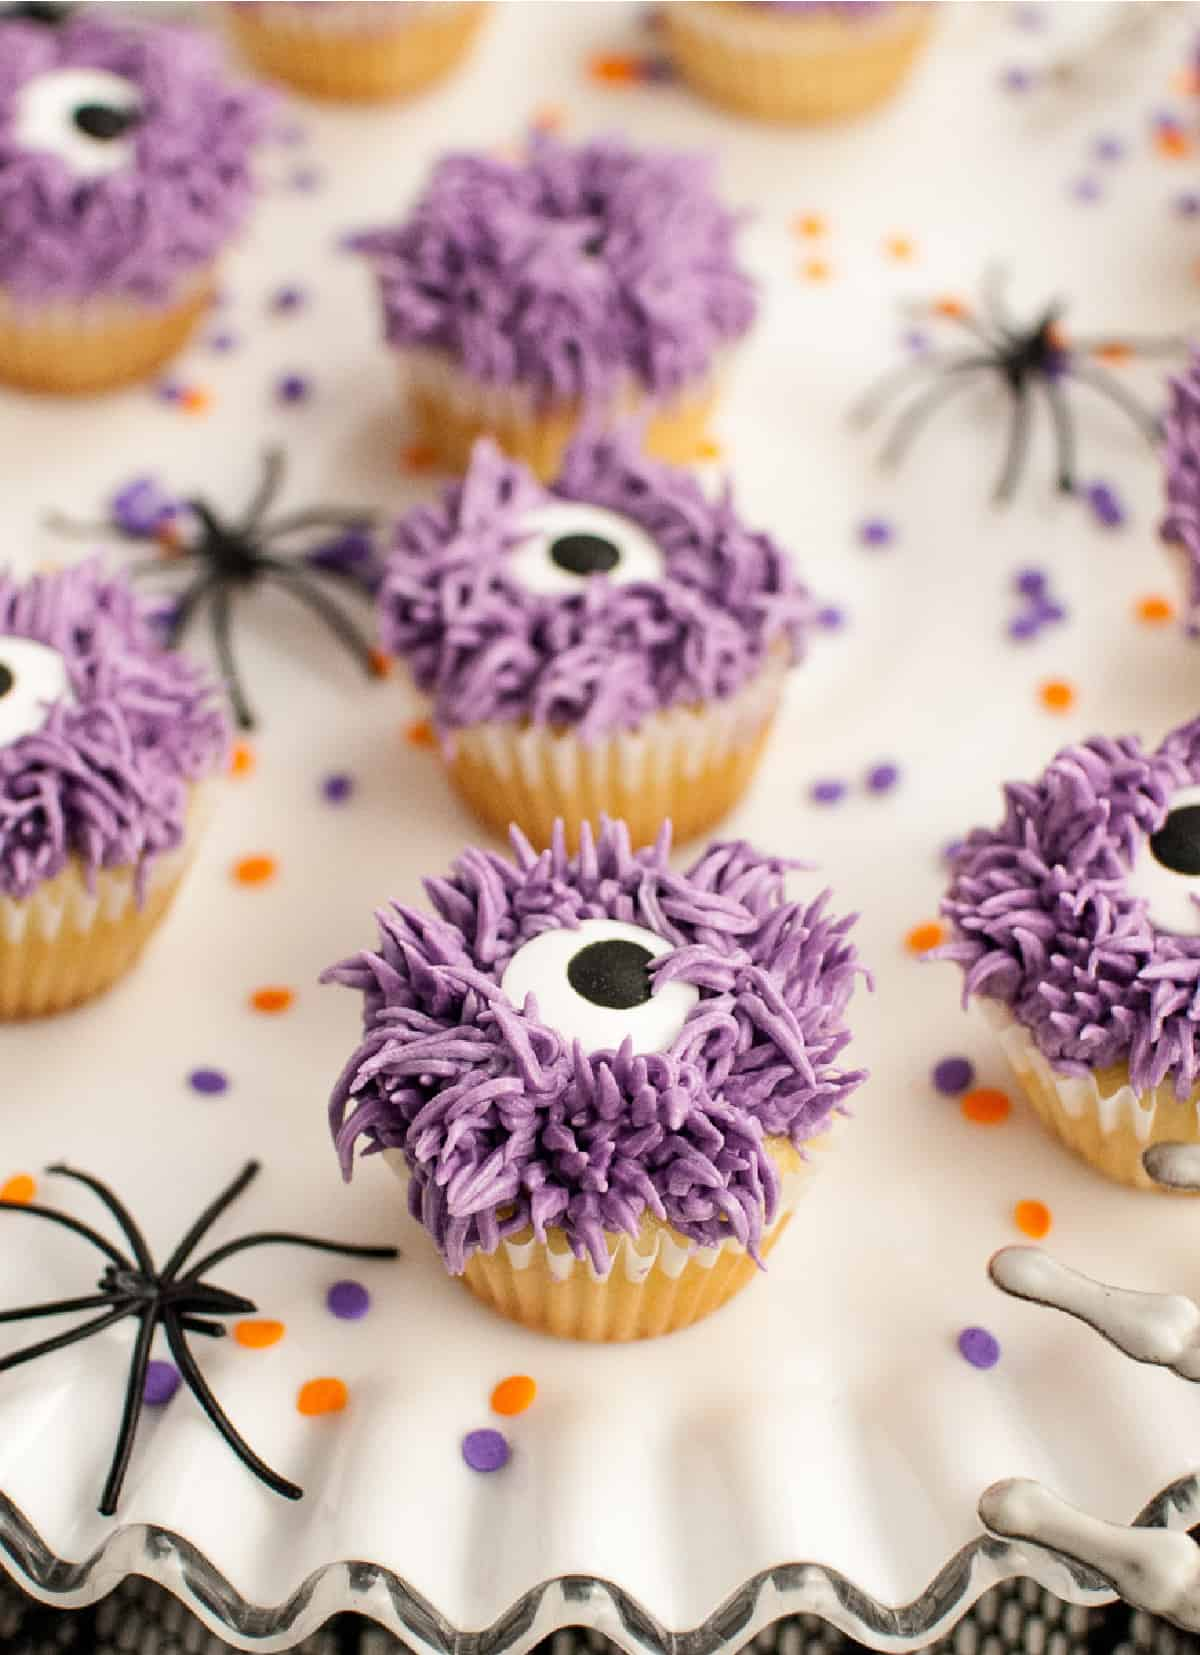 A close up photo of a purple monster cupcake on a white platter.